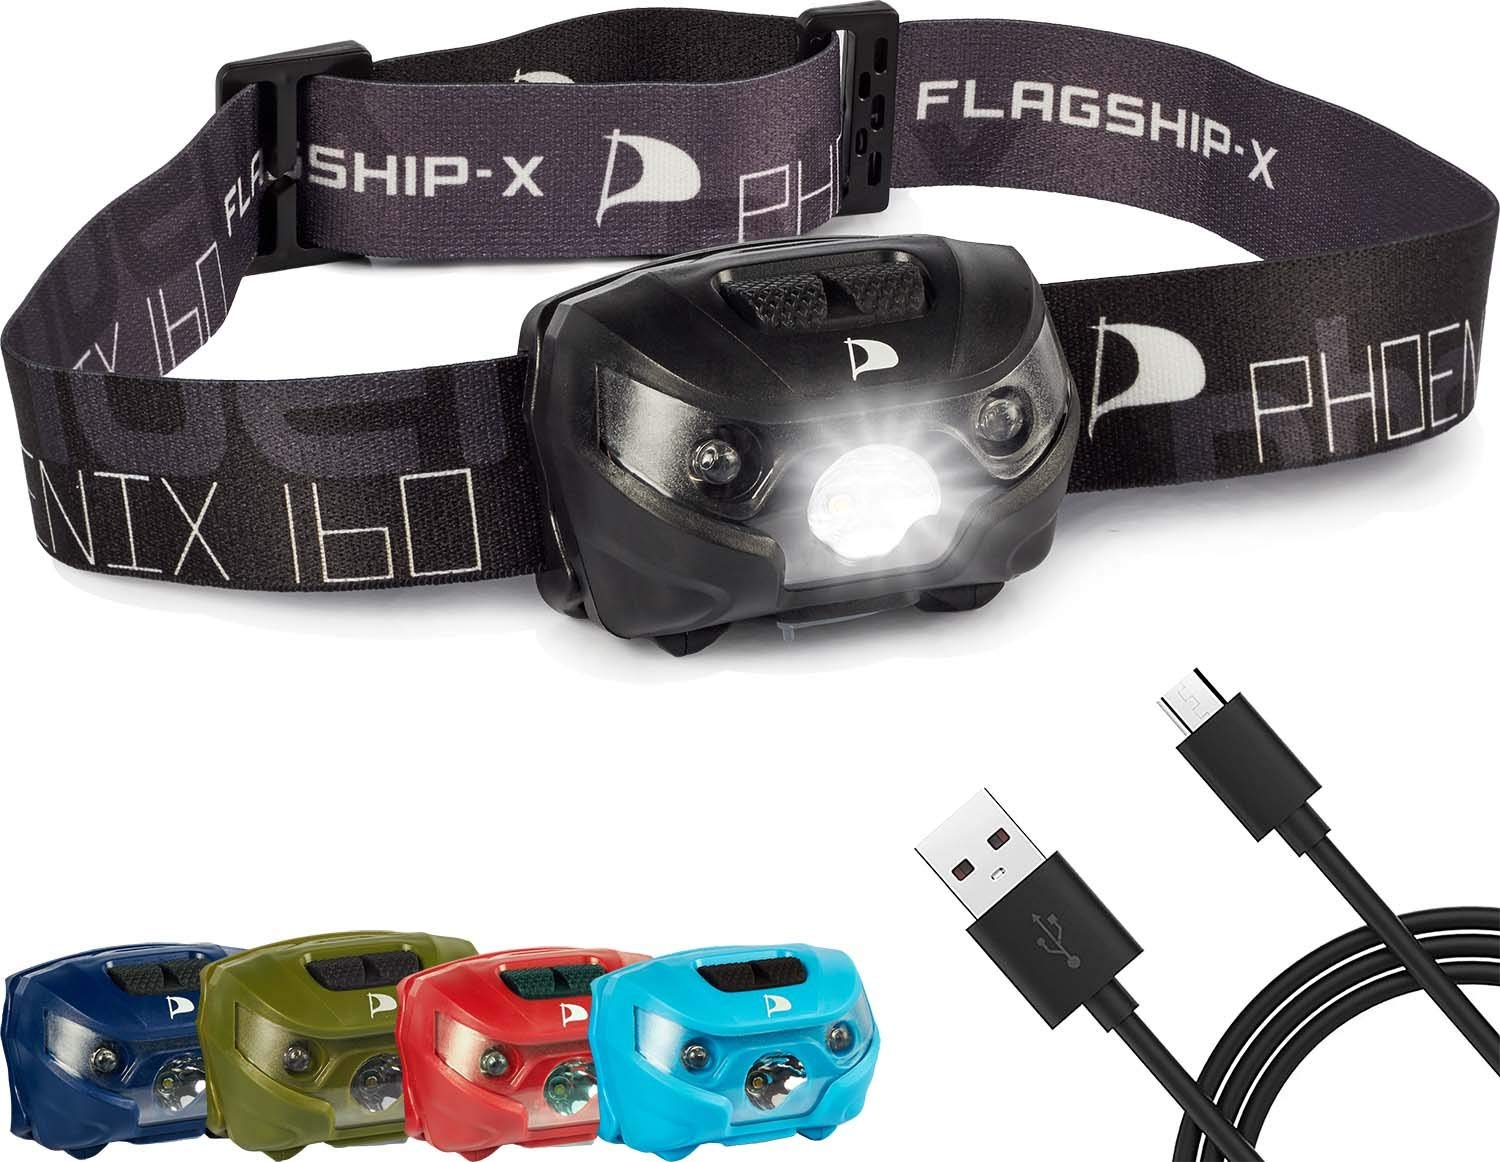 Flagship-X Phoenix USB Rechargeable Waterproof LED Camping Headlamp Flashlight For Running